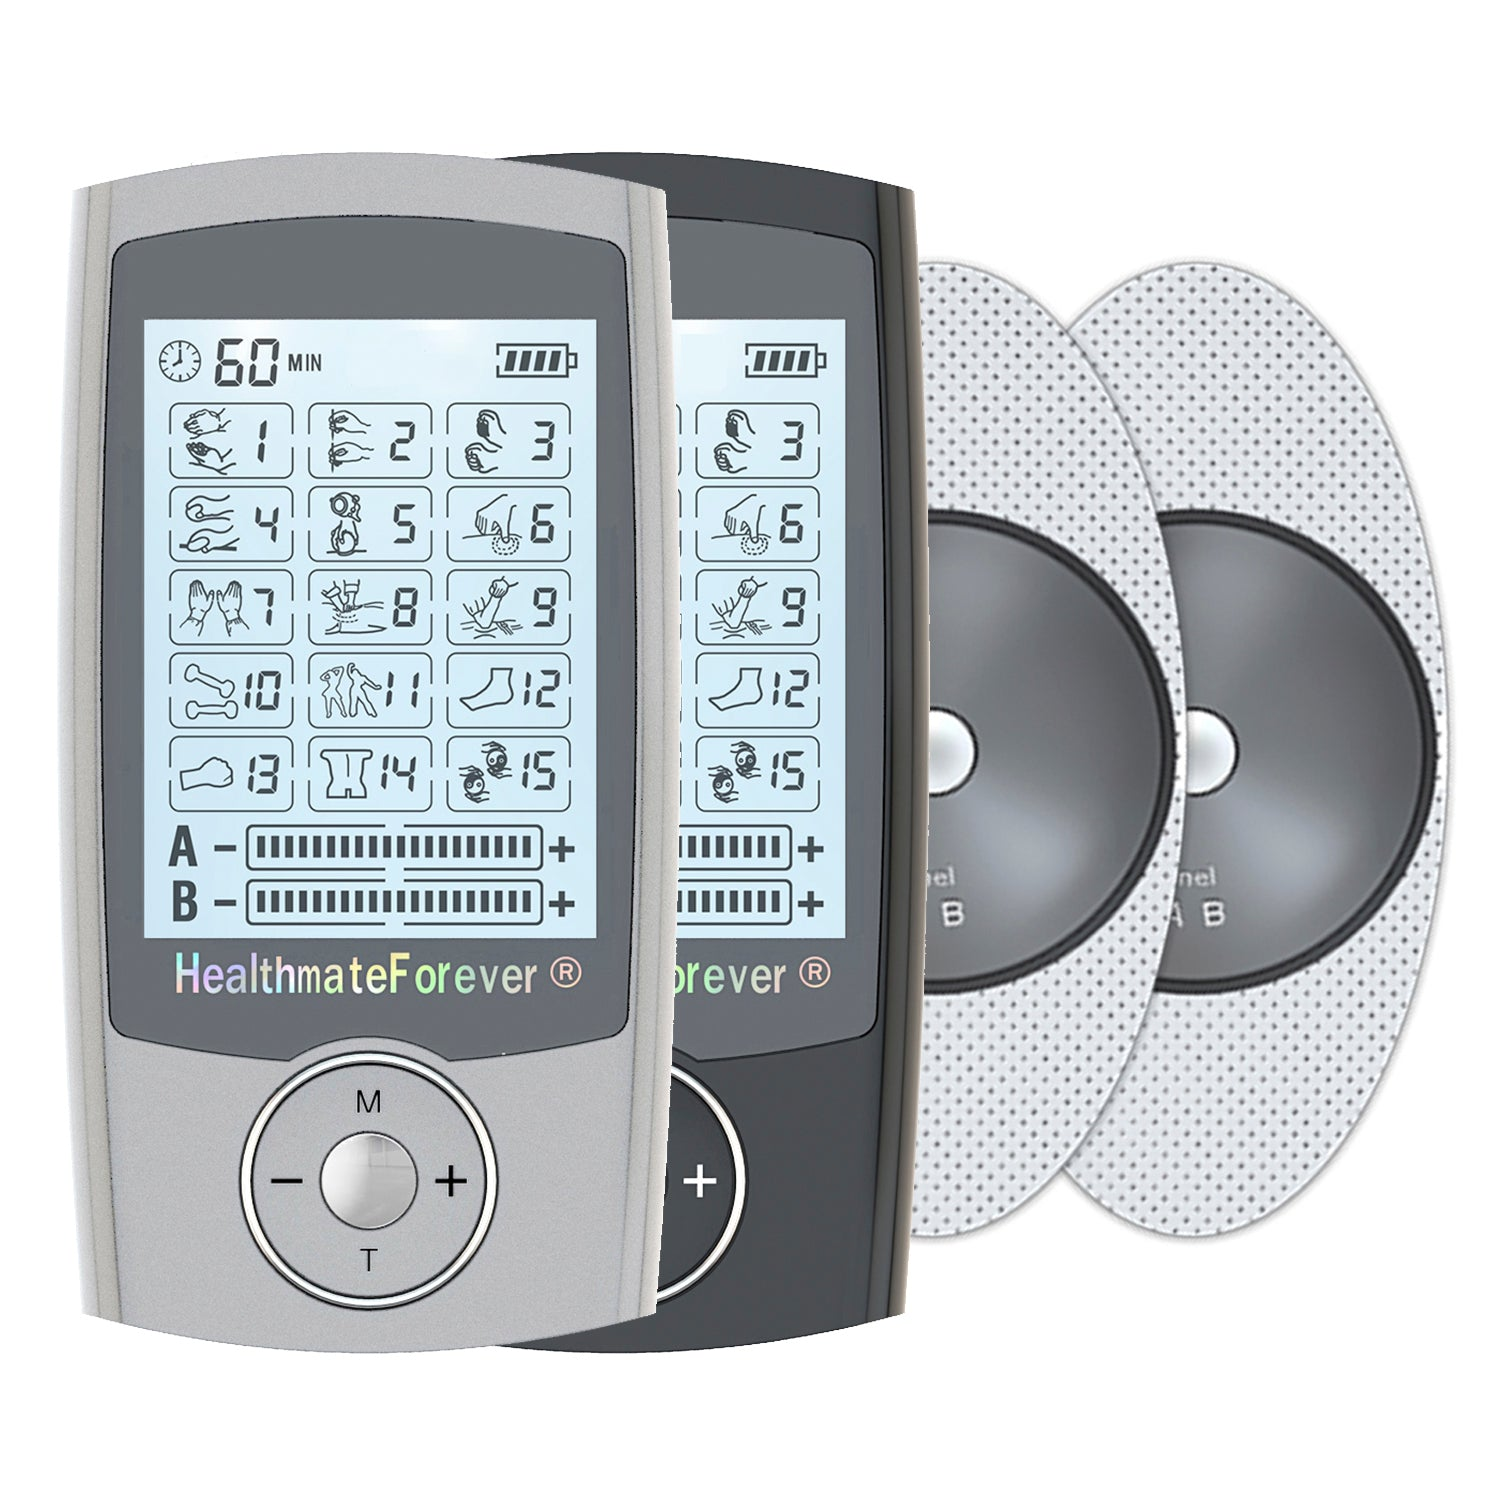 PRO15AB Pain Relief TENS Unit & Muscle Stimulator - 2 Year Warranty - HealthmateForever.com